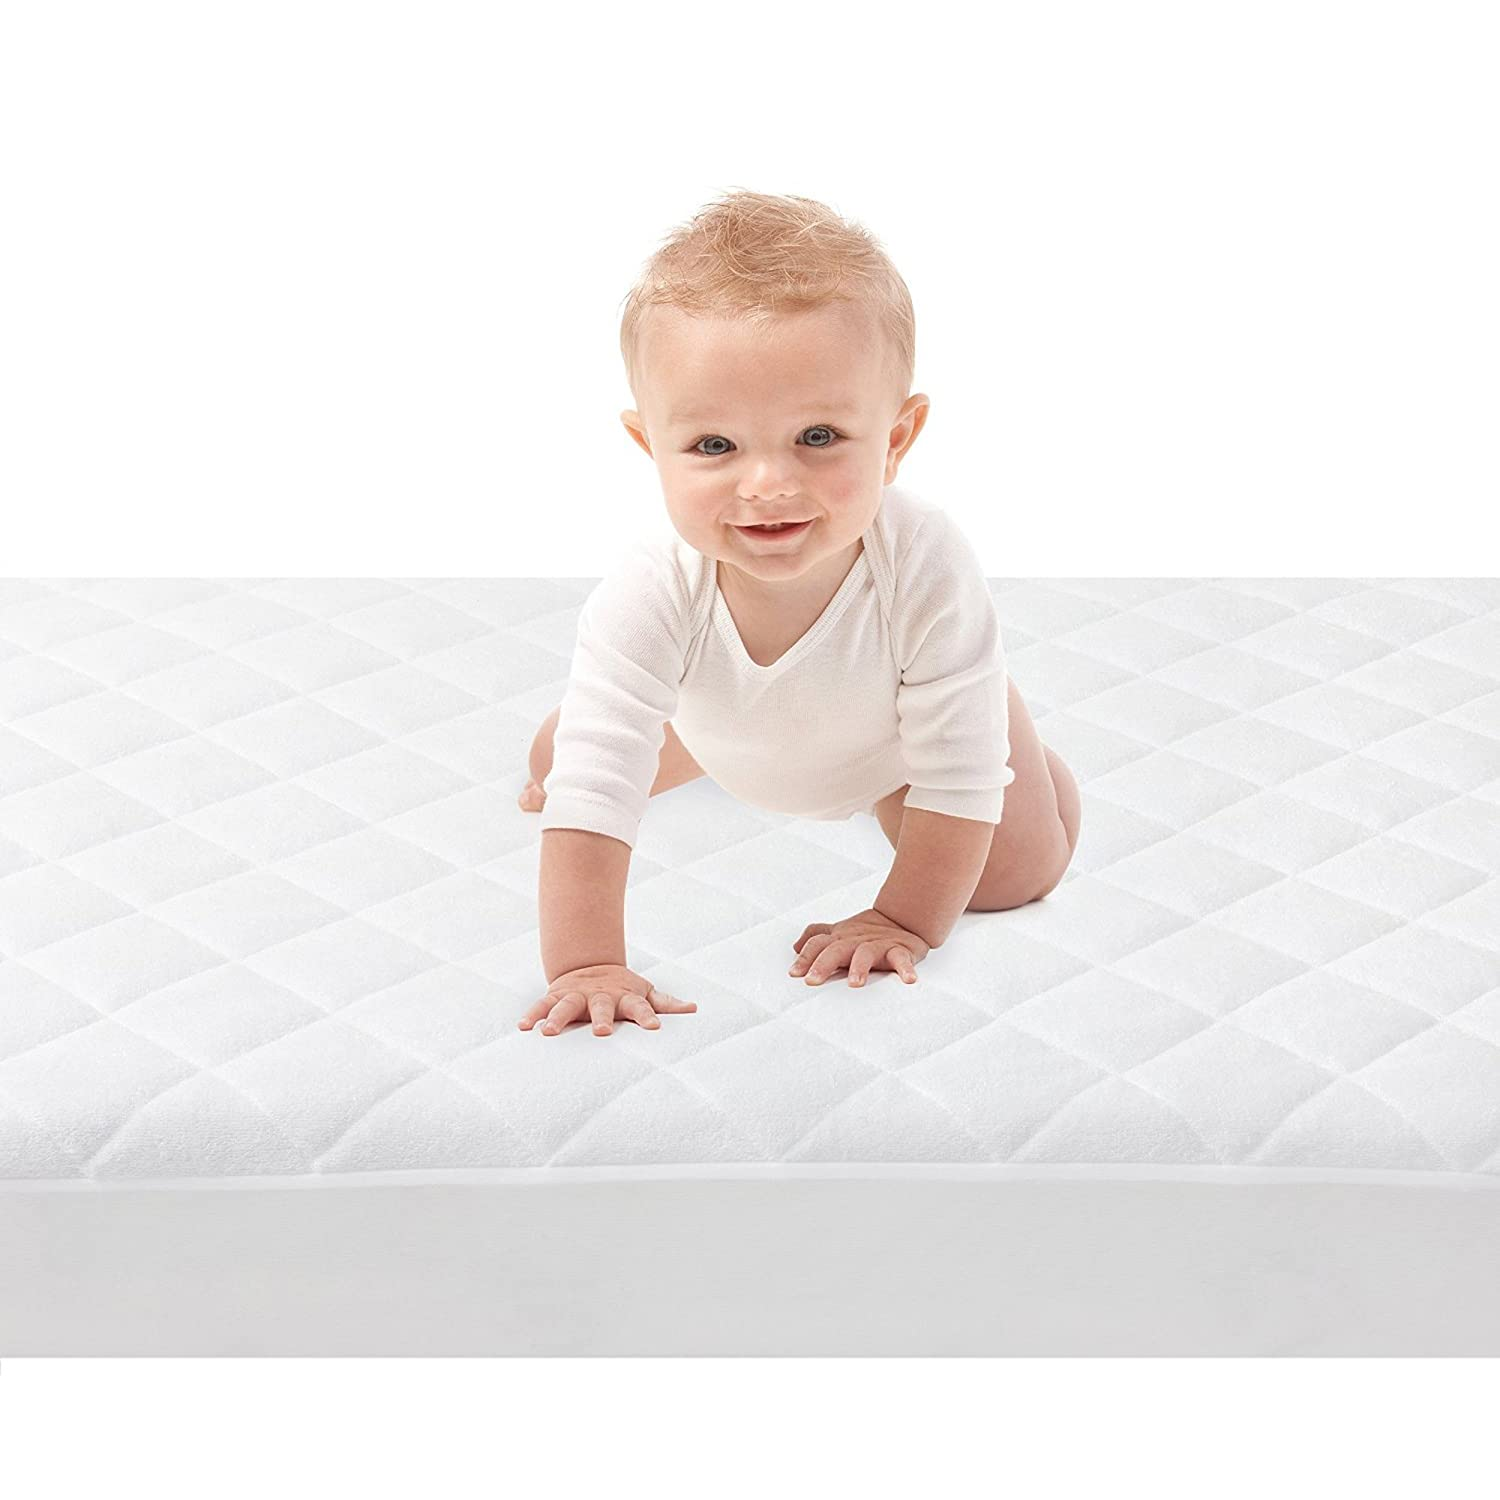 Super Soft and Ultra Absorbent Prevents Stains 52 inches by 28 inches 9 Inch Extra Long Bed Skirt with Elastic Bottom Quilted and Fitted Bamboo Crib Mattress Protector Washable and Dryer Safe Crib Size